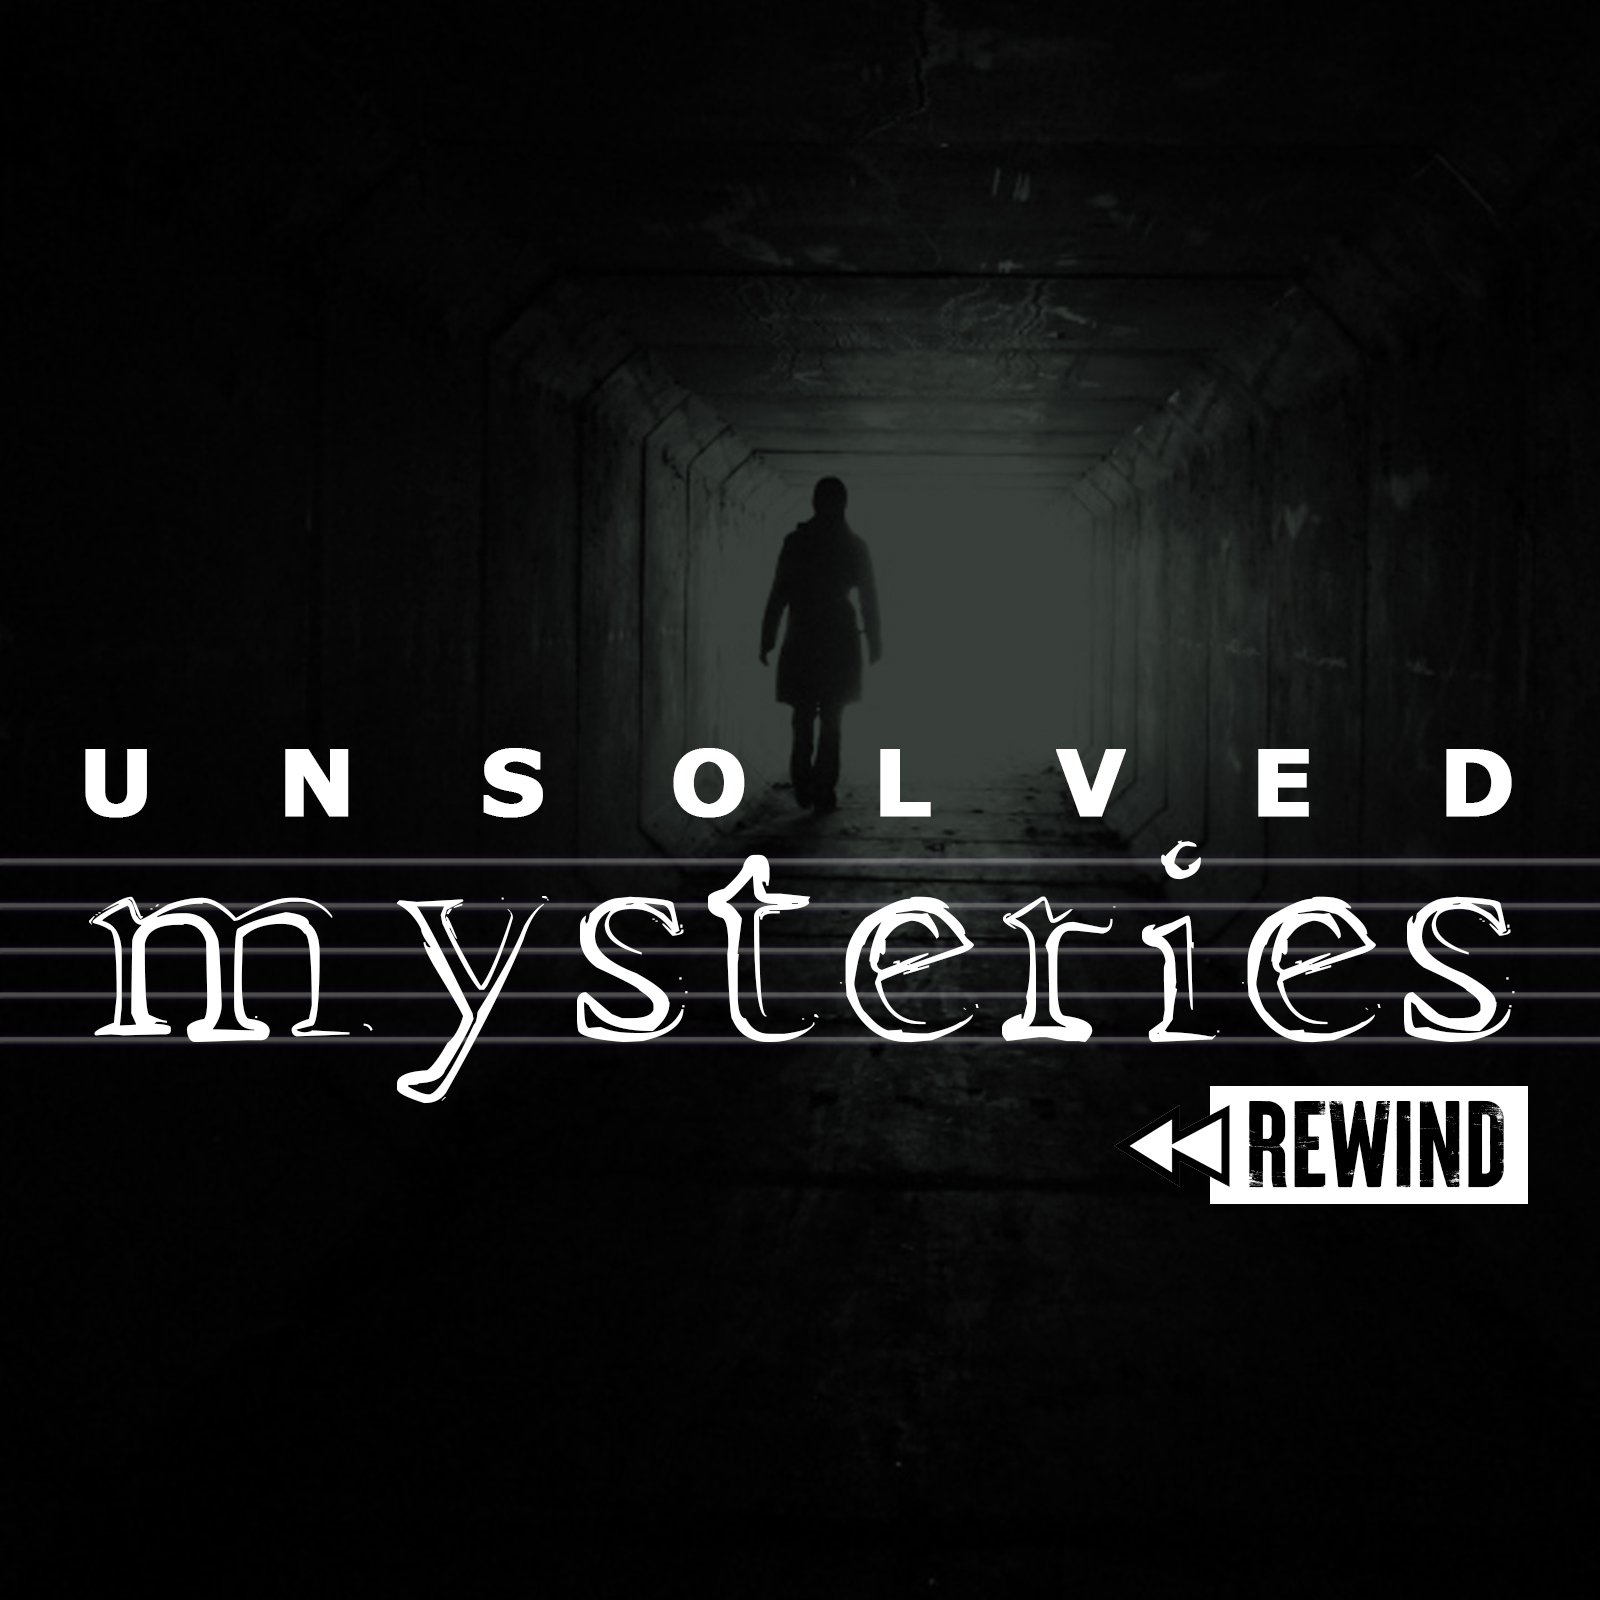 Unsolved Mysteries Rewind